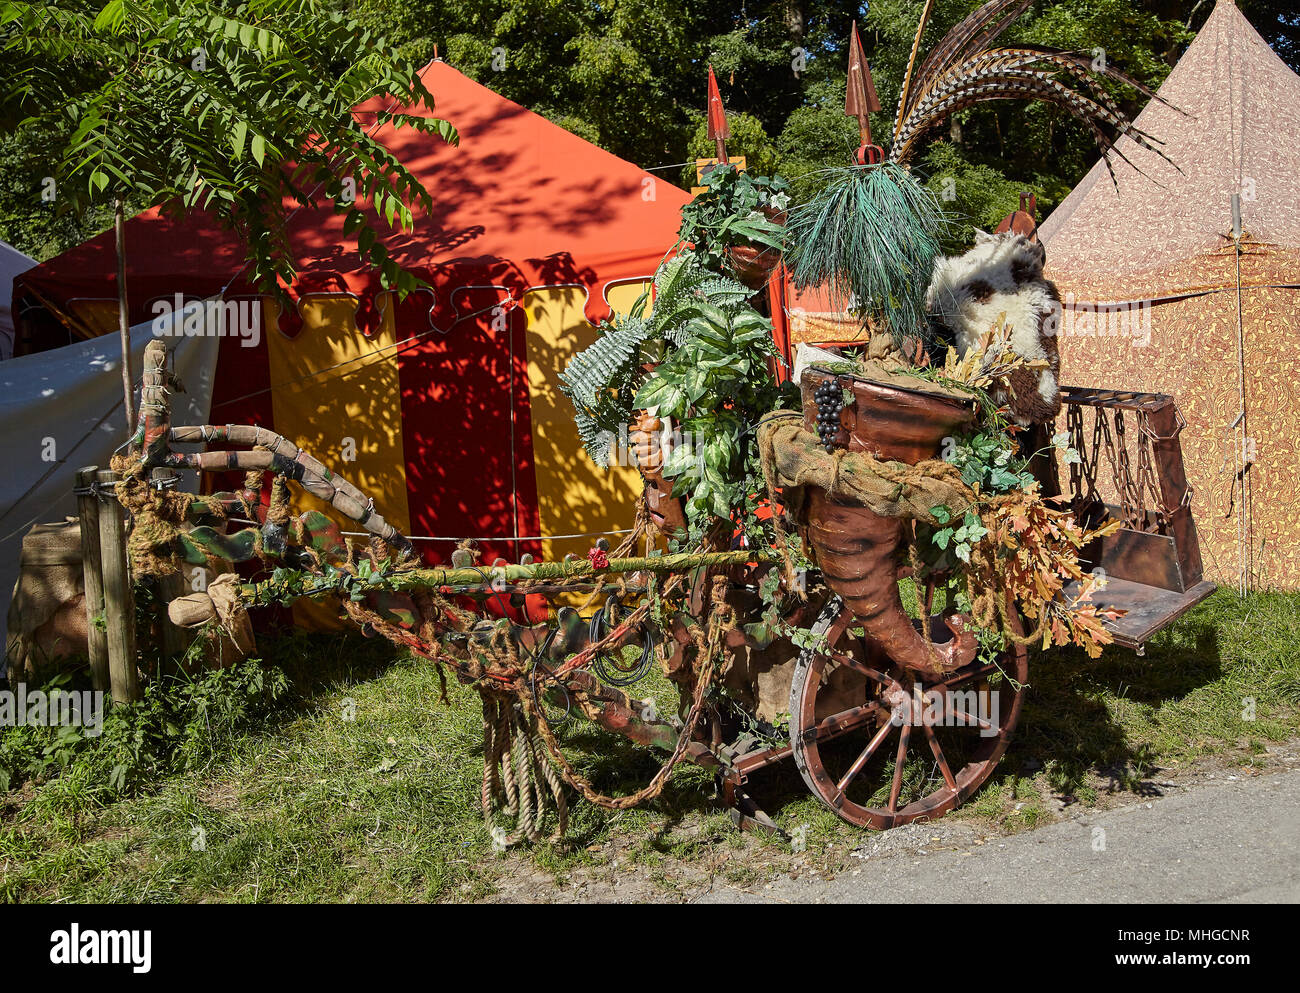 Wooden Medieval Barrow with Plants and Drinking Horn, Kaltenberg Ritterspiele, Knight Festival - Stock Image